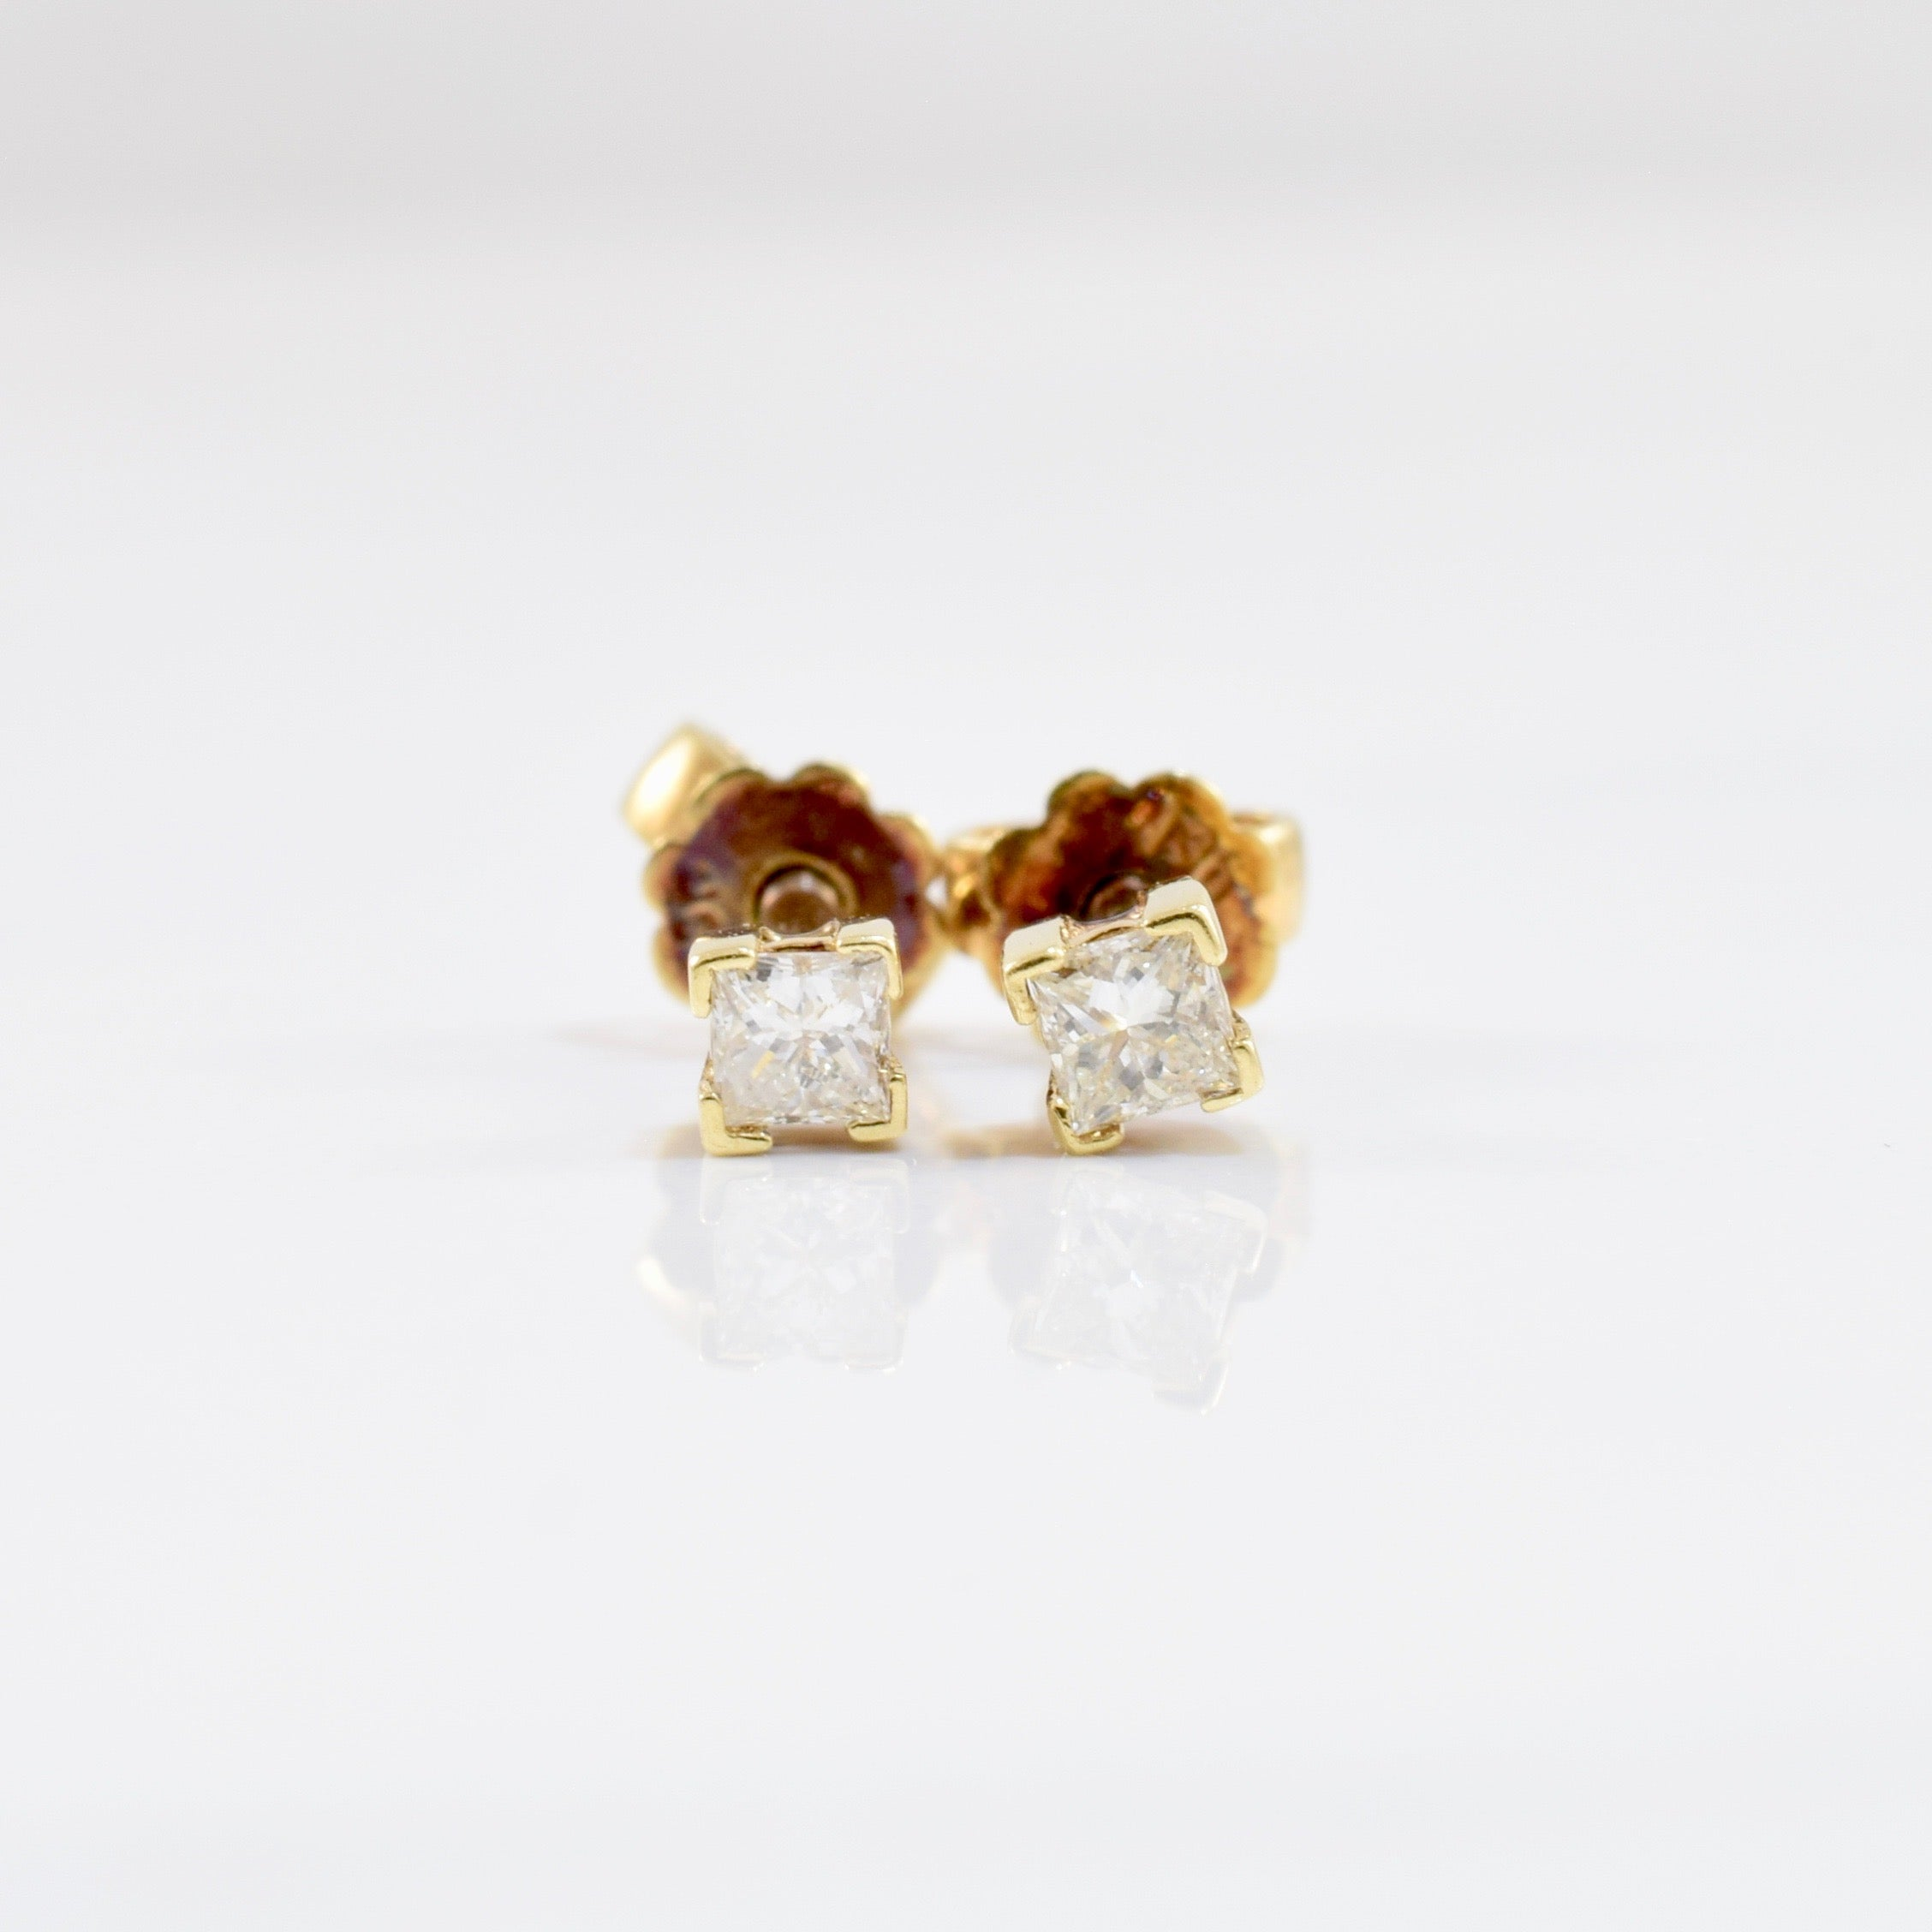 Princess Diamond Stud Earrings | 0.12 ctw |